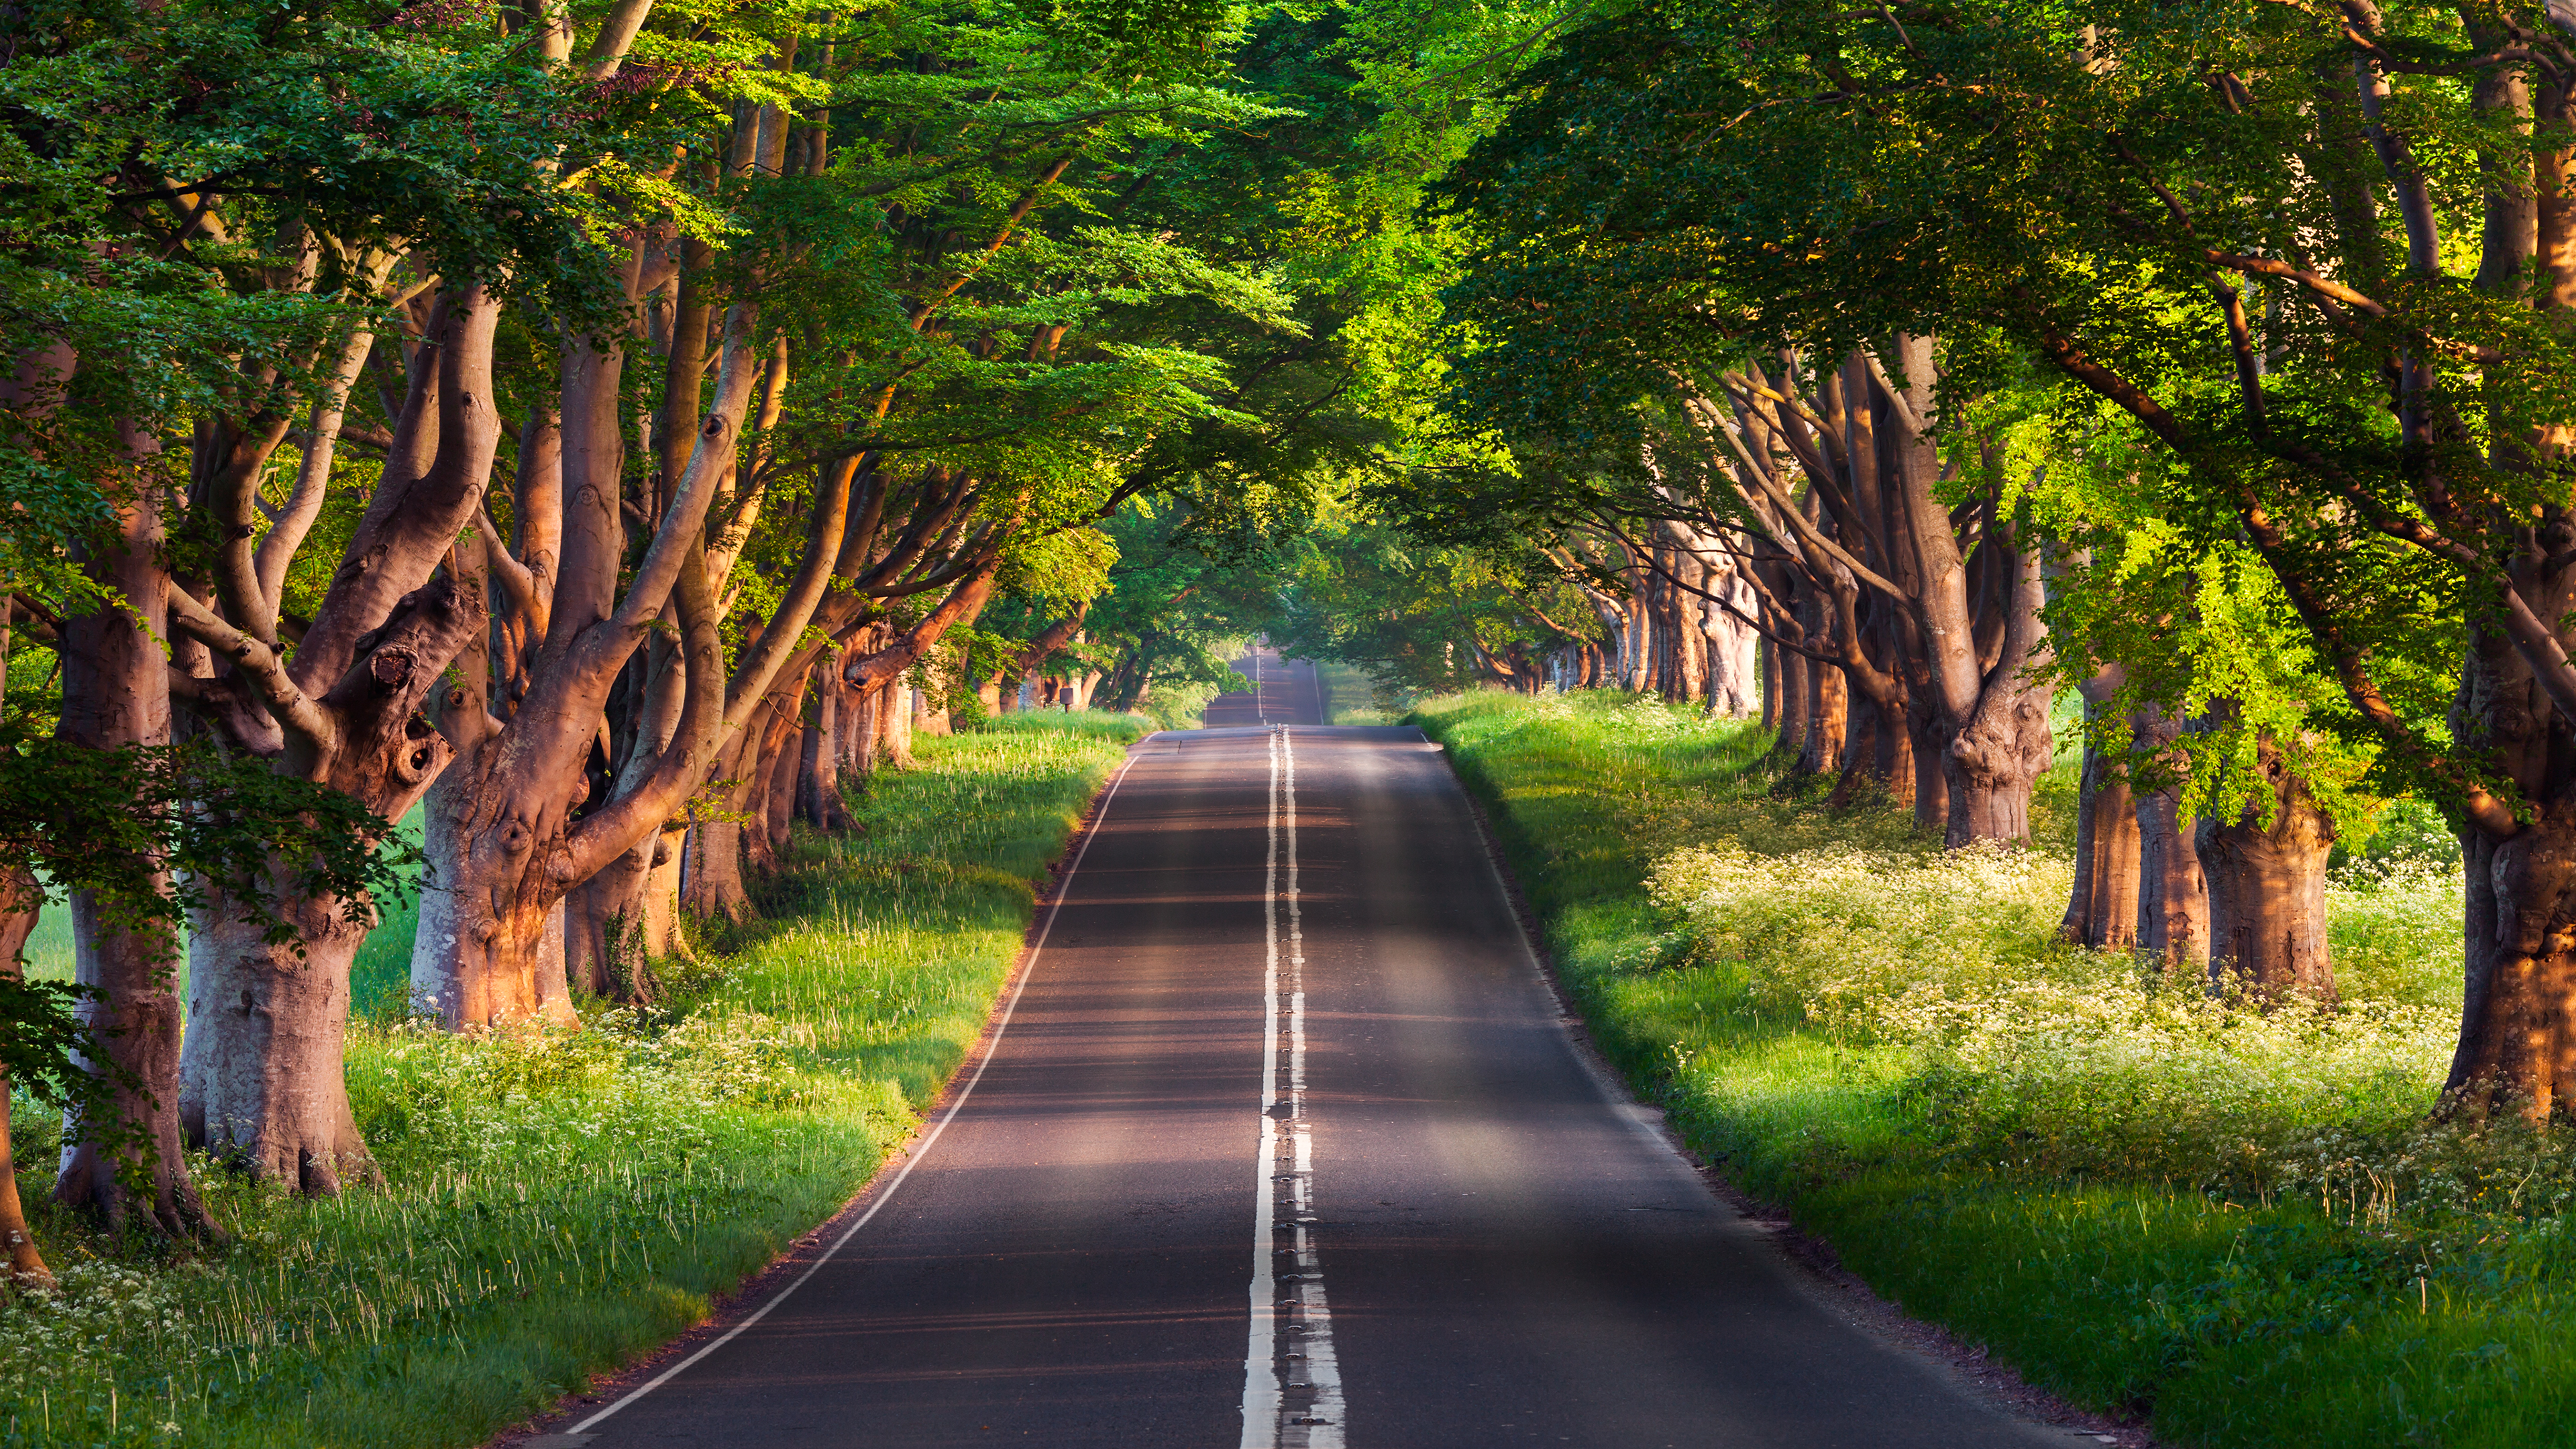 UHD 4K Blanford Road and Natures Wallpaper Backgrounds